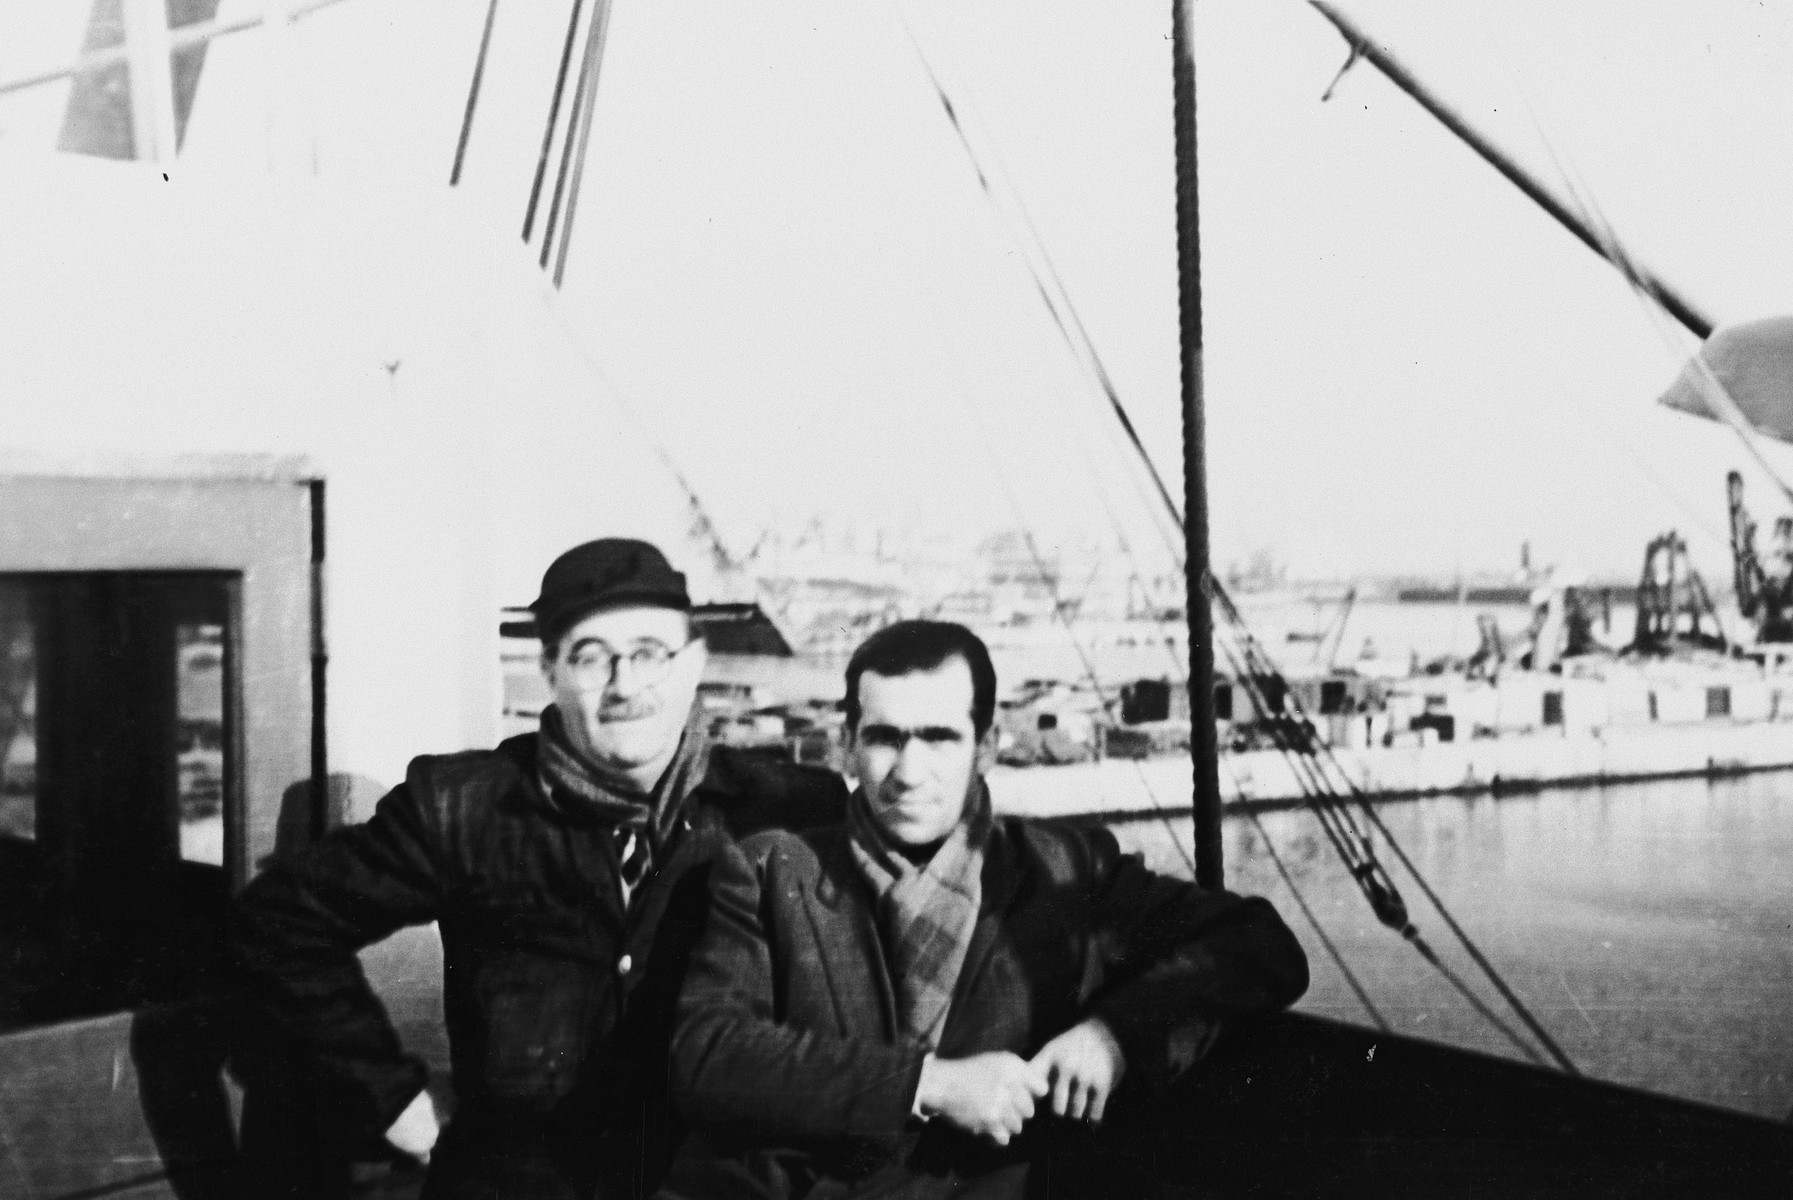 Two Romanian Jews pose in the port of Constanta before the sailing of the Pan Crescent (later renamed the Atzmaut).  Pictured is Ricu Lupu, a Romanian-born Palestinian Jew who parachuted into Romania to help the resistance.